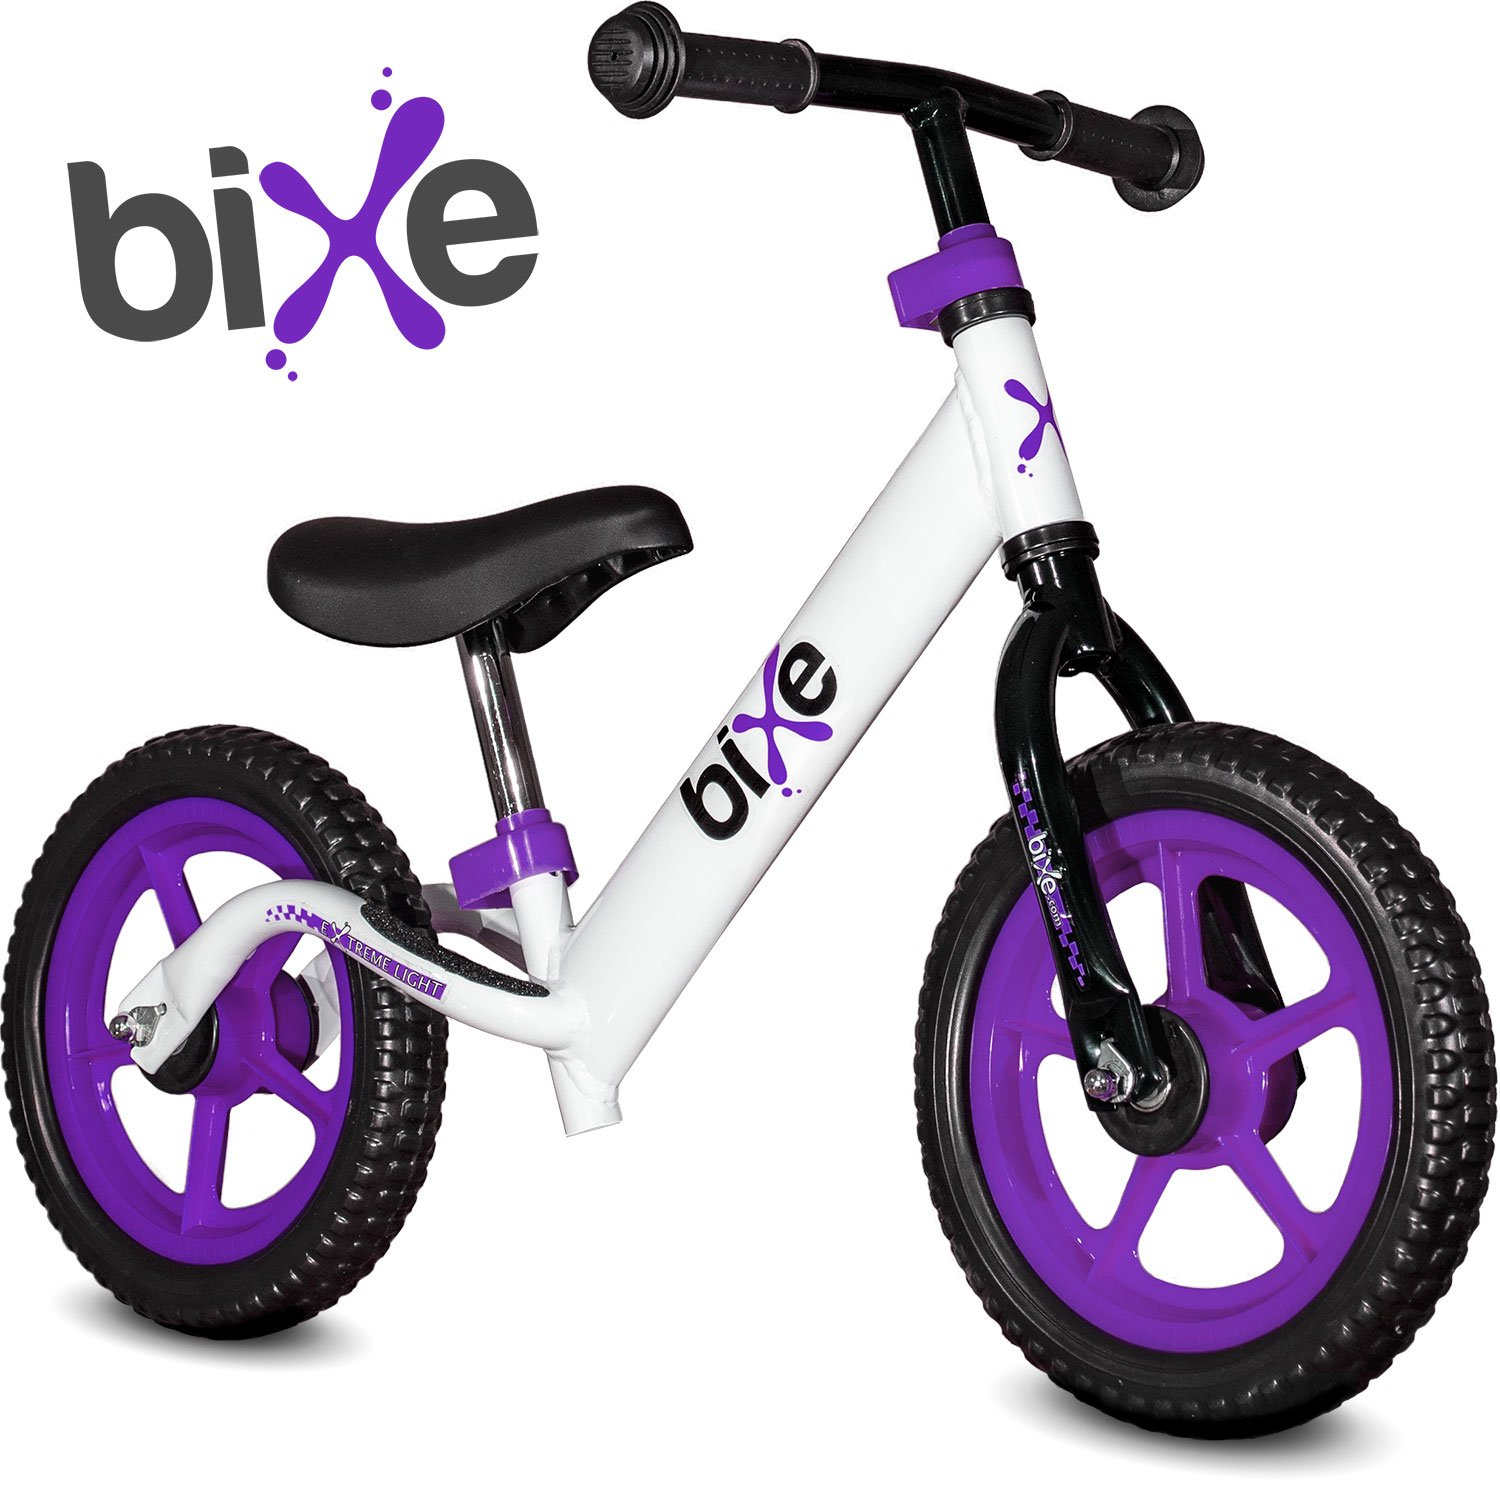 Bixe Extreme Light (4 lb) Purple Balance Bike For Kids and Toddlers 18 Months to 5 Years